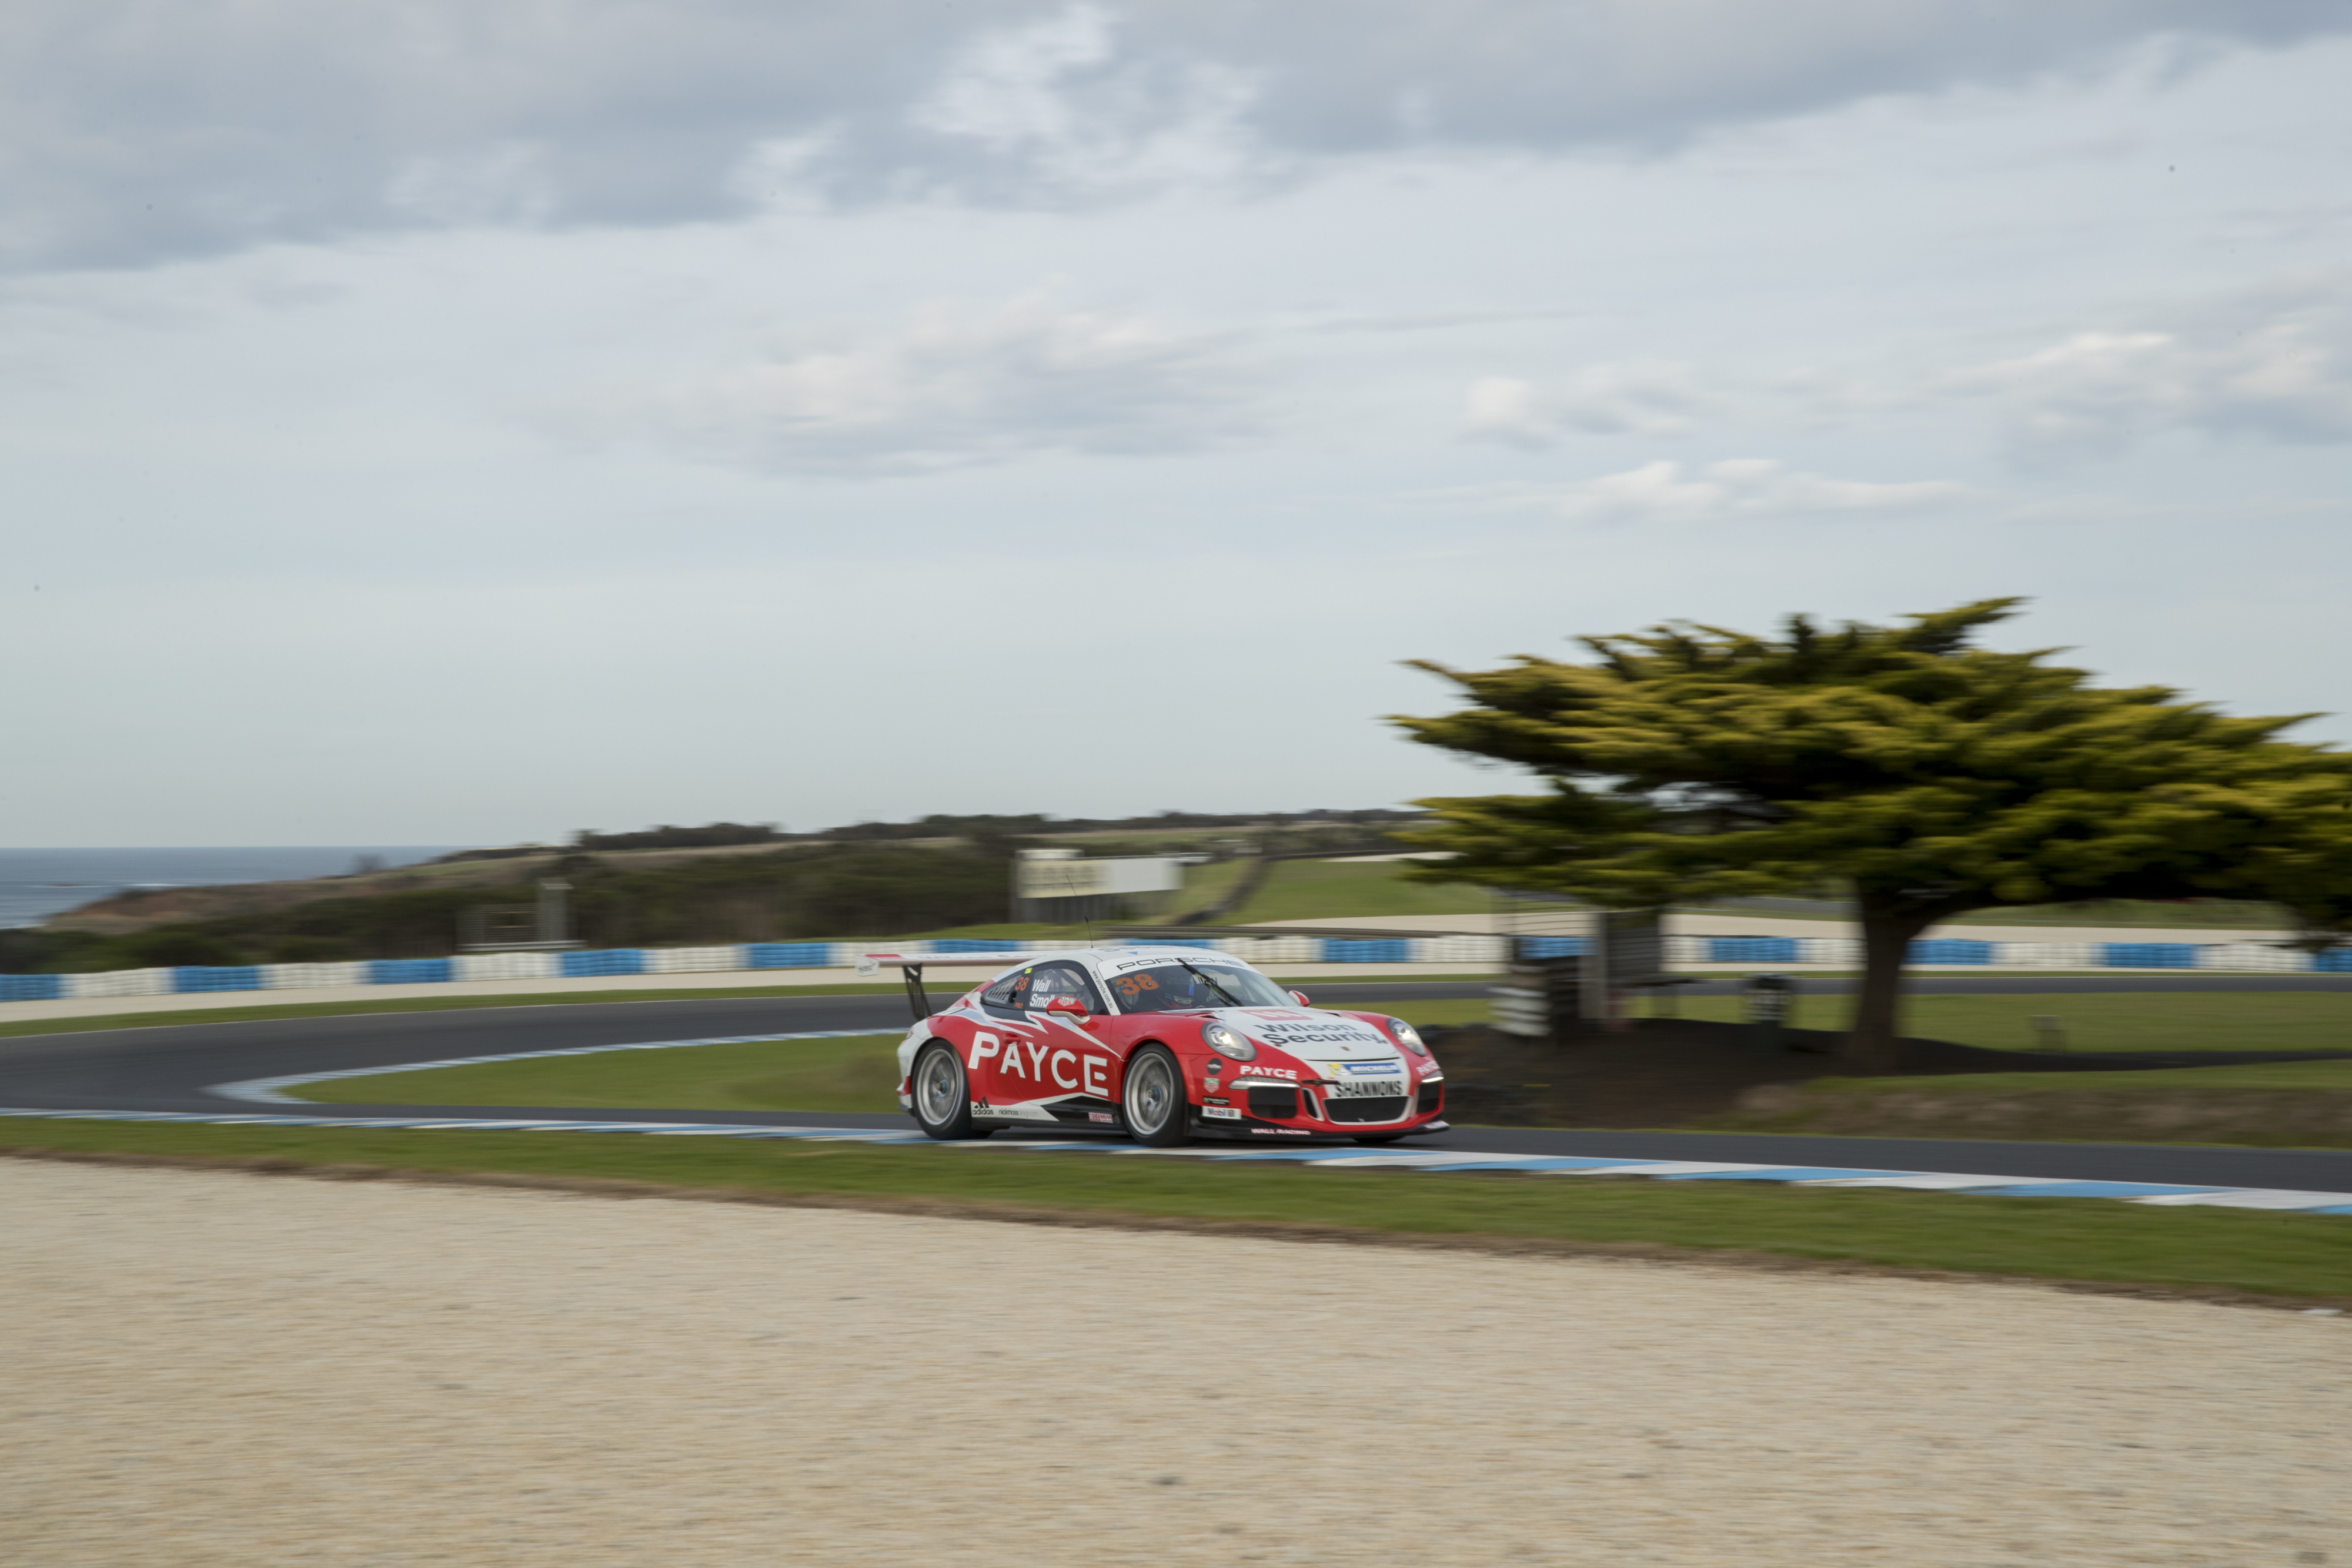 p38-Wall-CarreraCup-R3-2017-01196